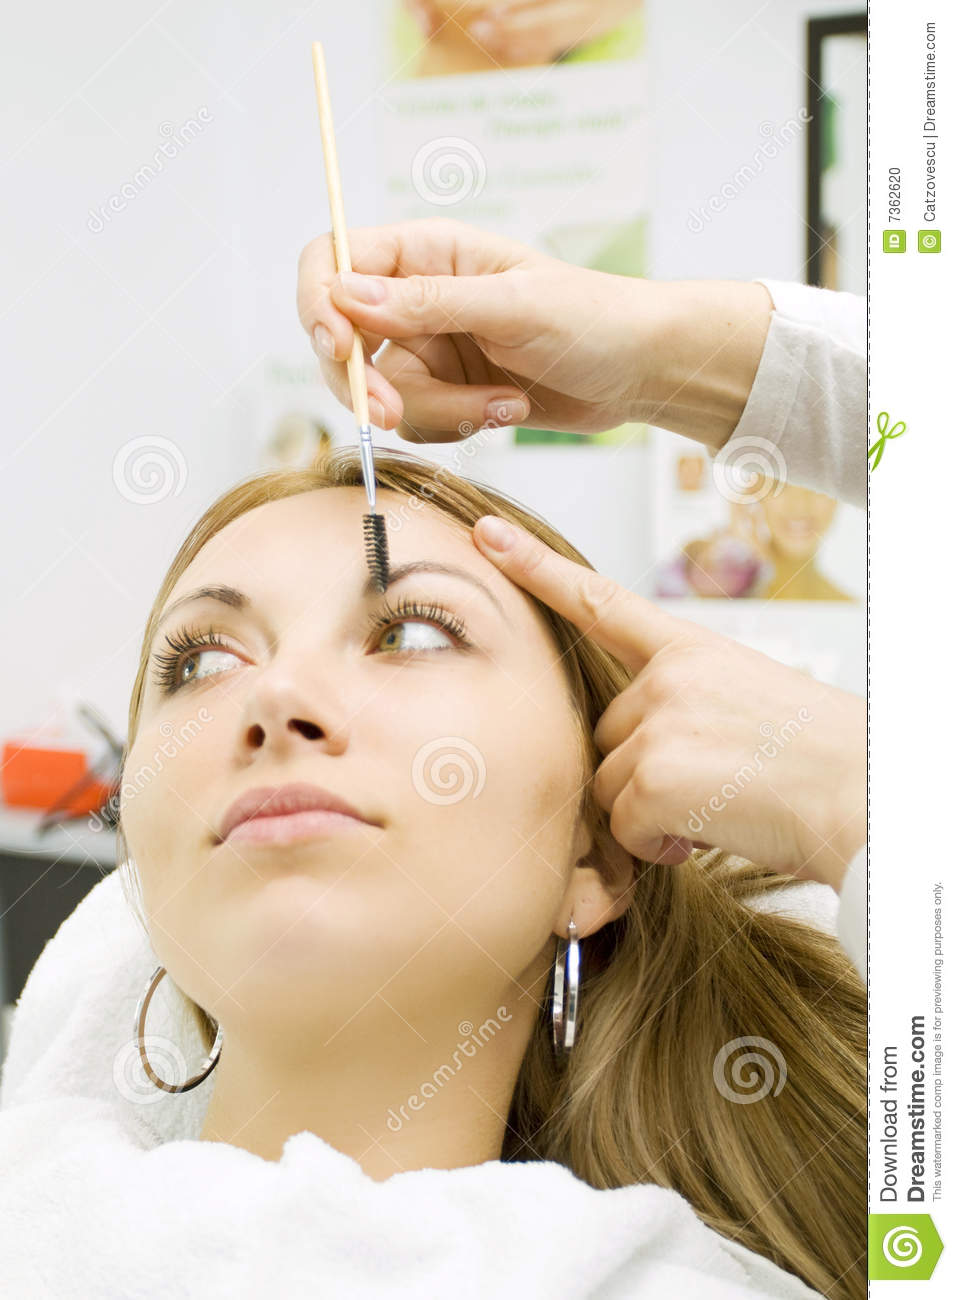 Beauty salon stock photo image 7362620 for A creative touch beauty salon